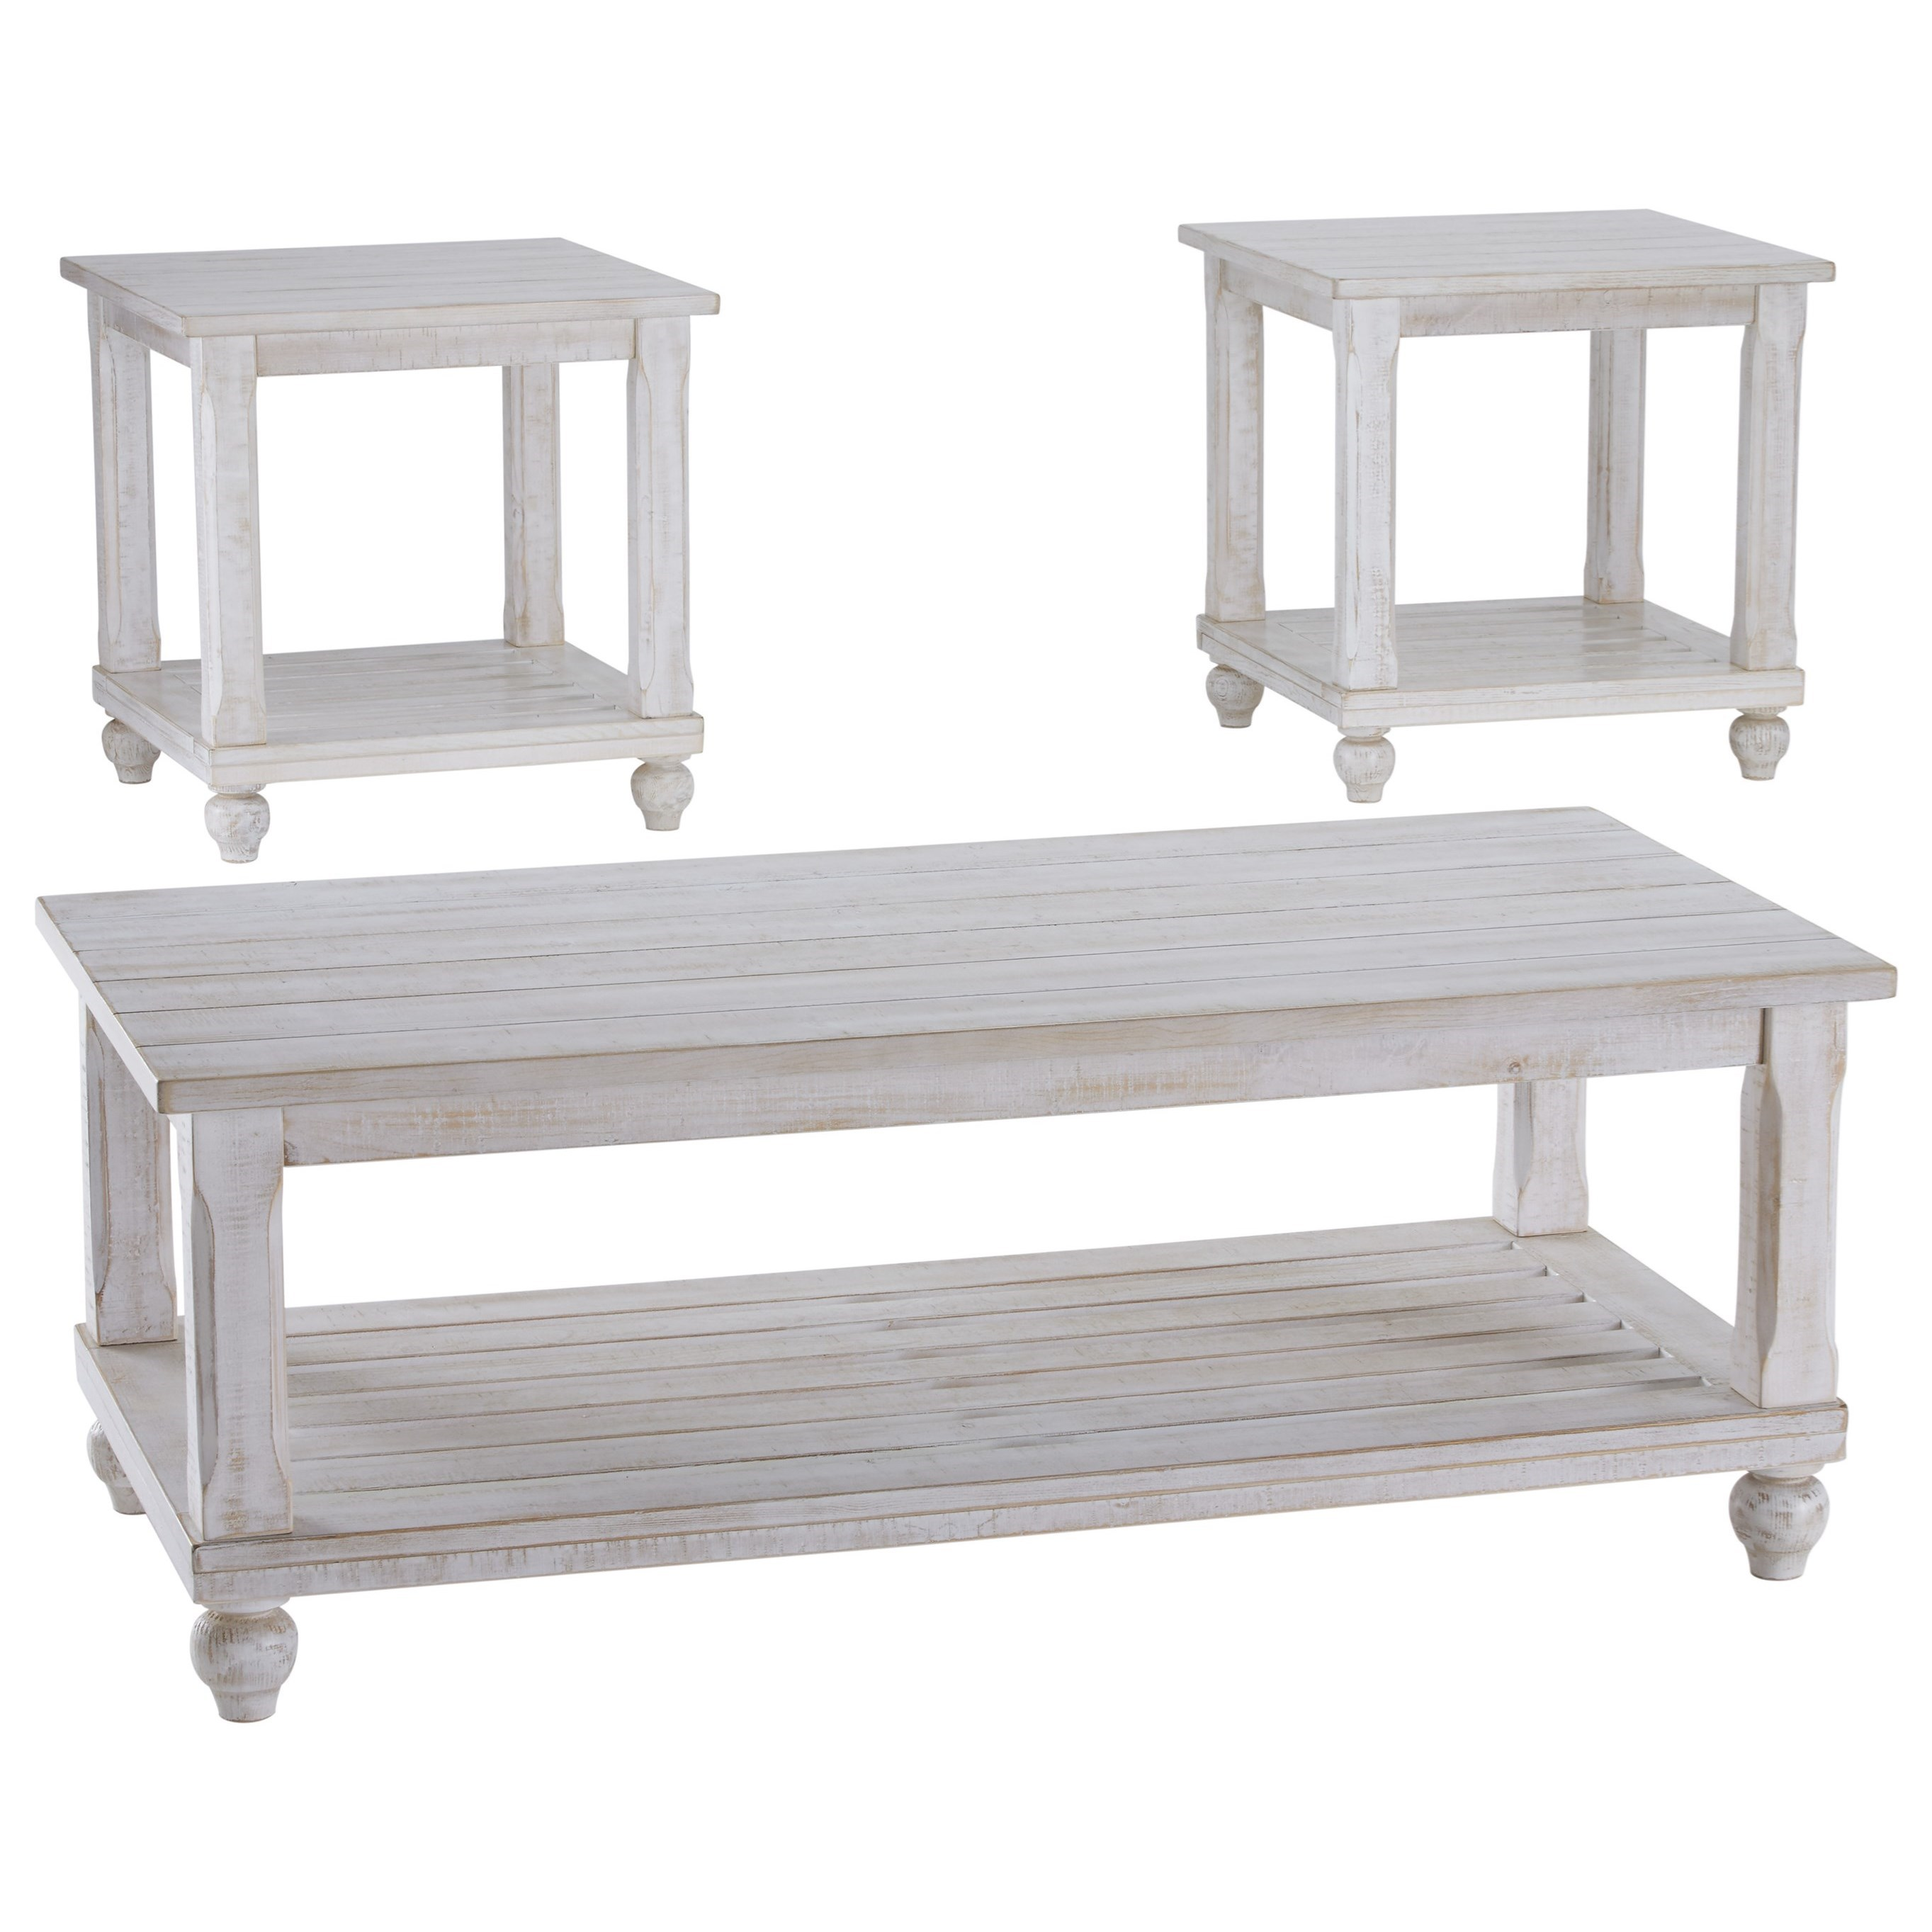 Signature Design by Ashley Cloudhurst 3 Piece Occasional Table Set - Item Number: T488-13